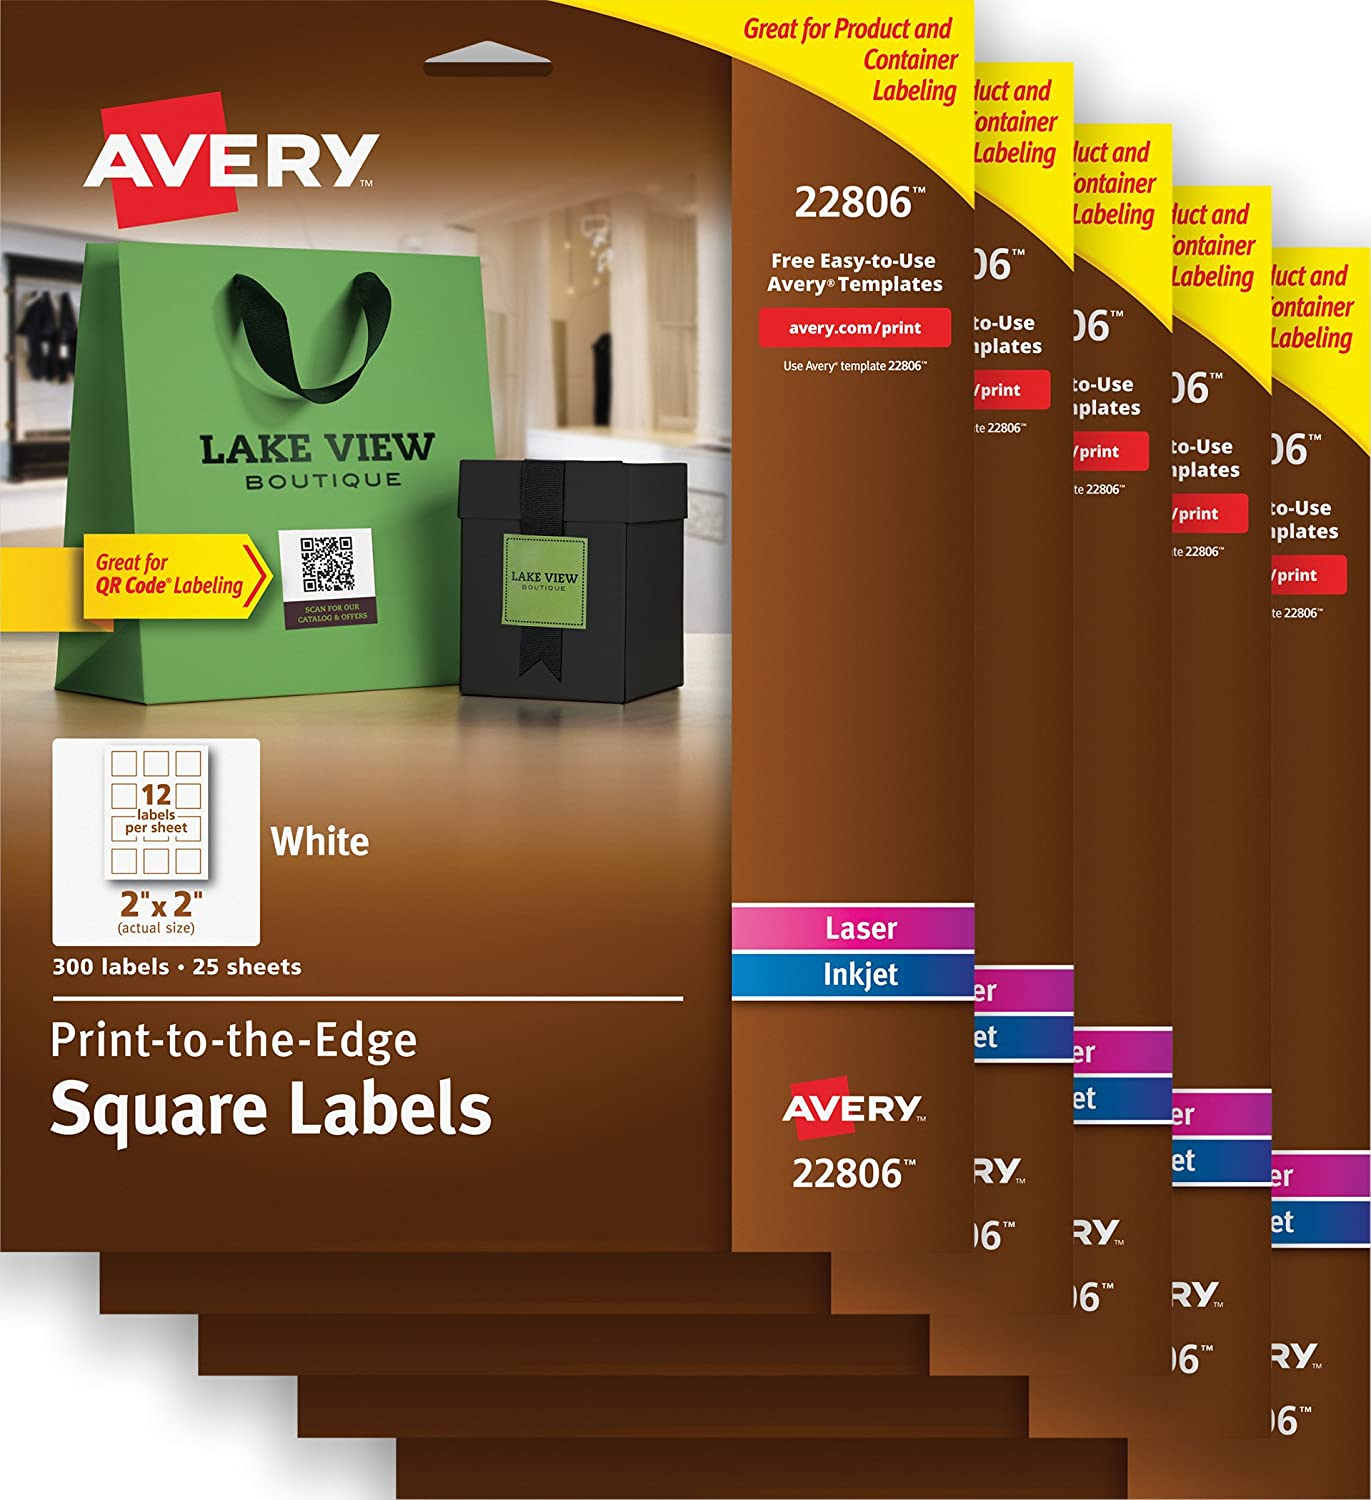 amazoncom avery easy peel print to the edge white square labels 2 x 2 300 labels per pack case pack of 5 22806 office products